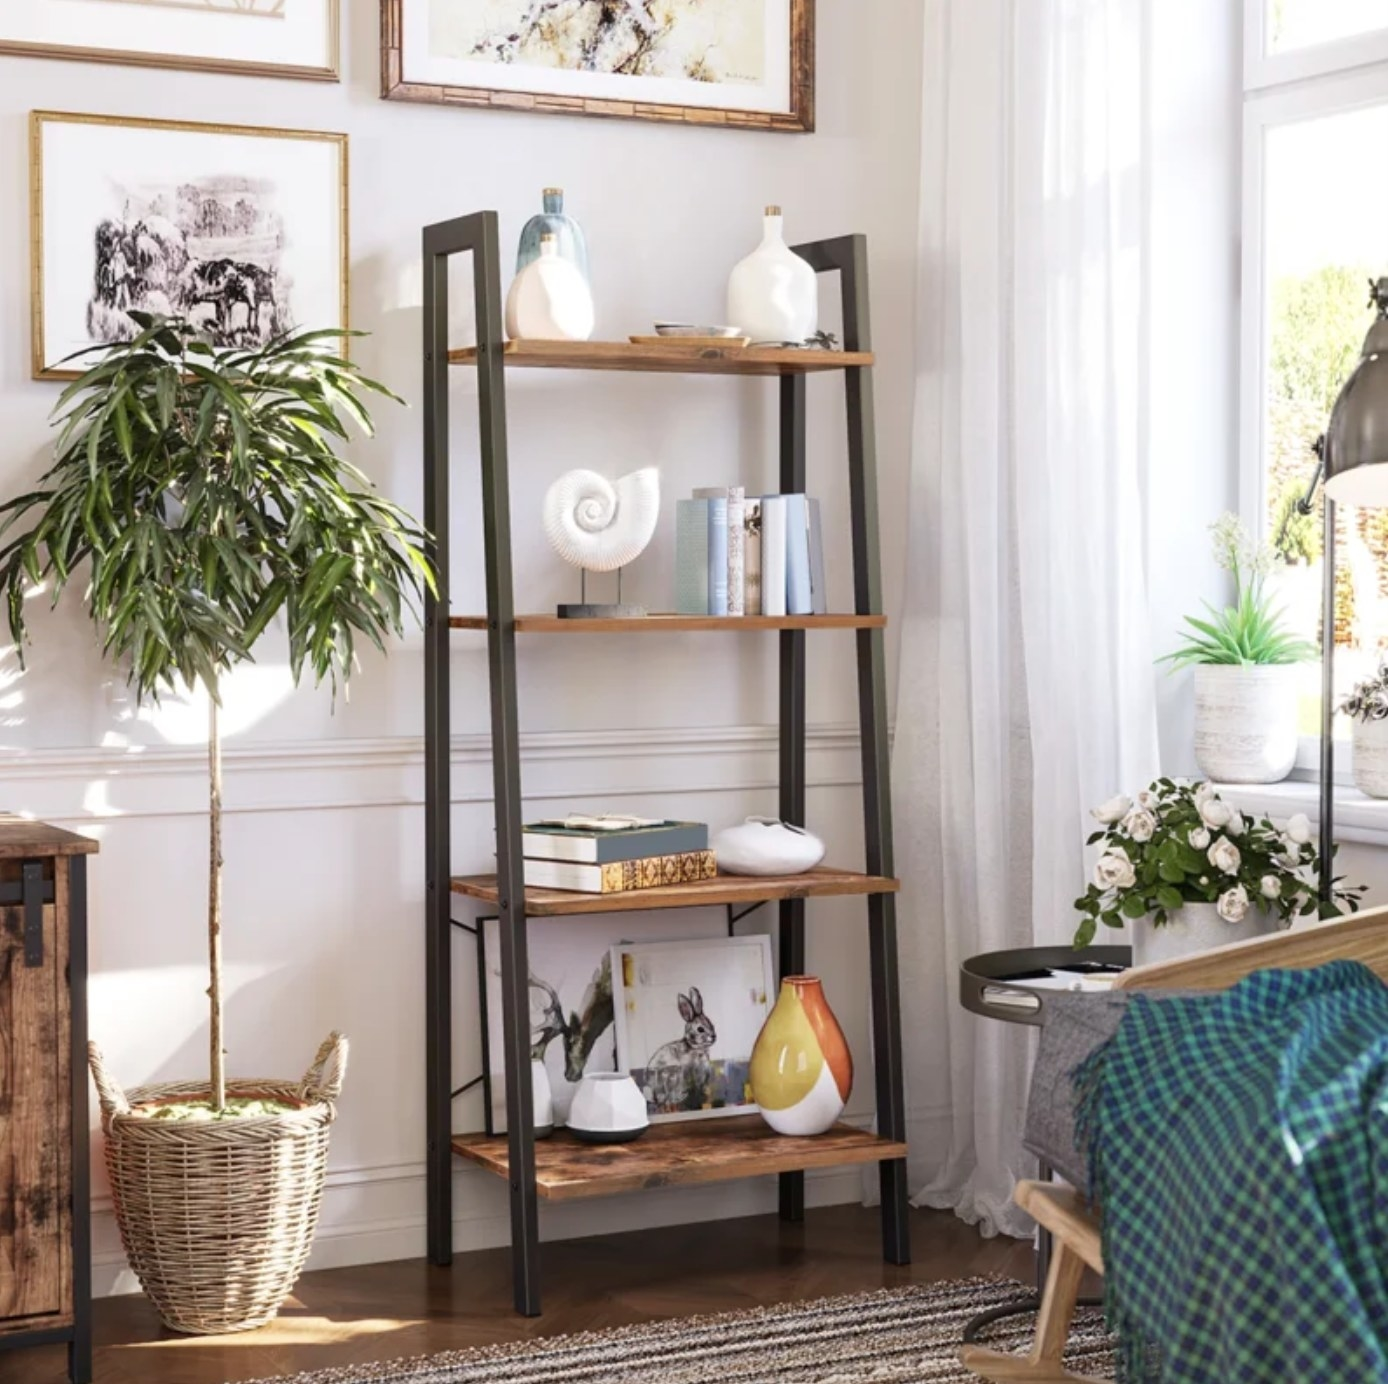 The metal ladder bookcase with wood shelves